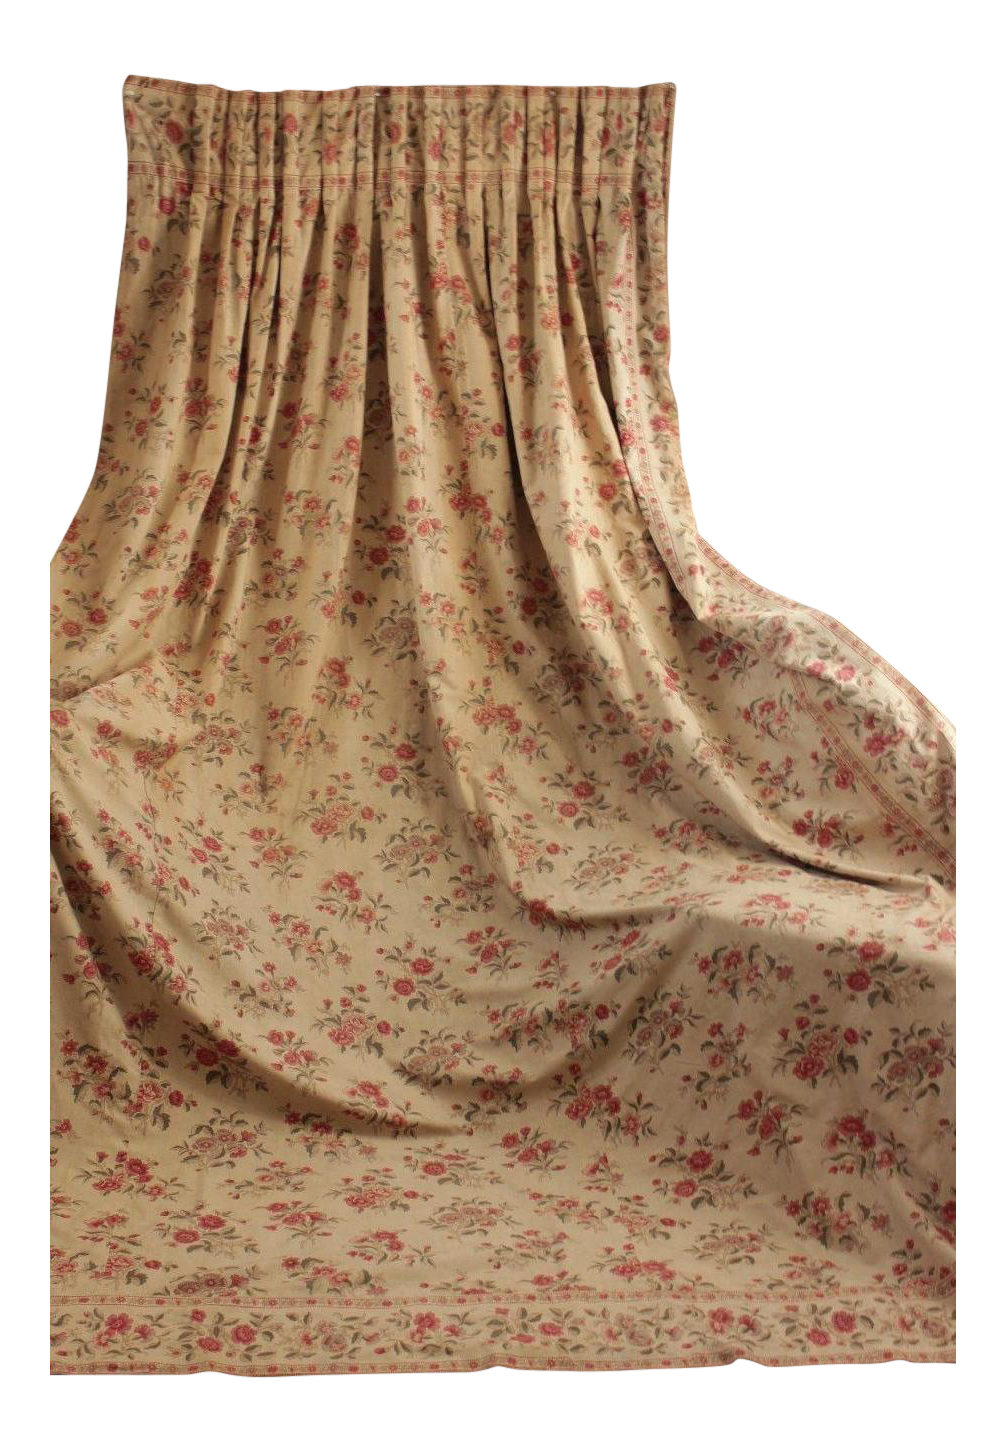 Antique French 19th Century Victorian Era Floral Backed Curtain C